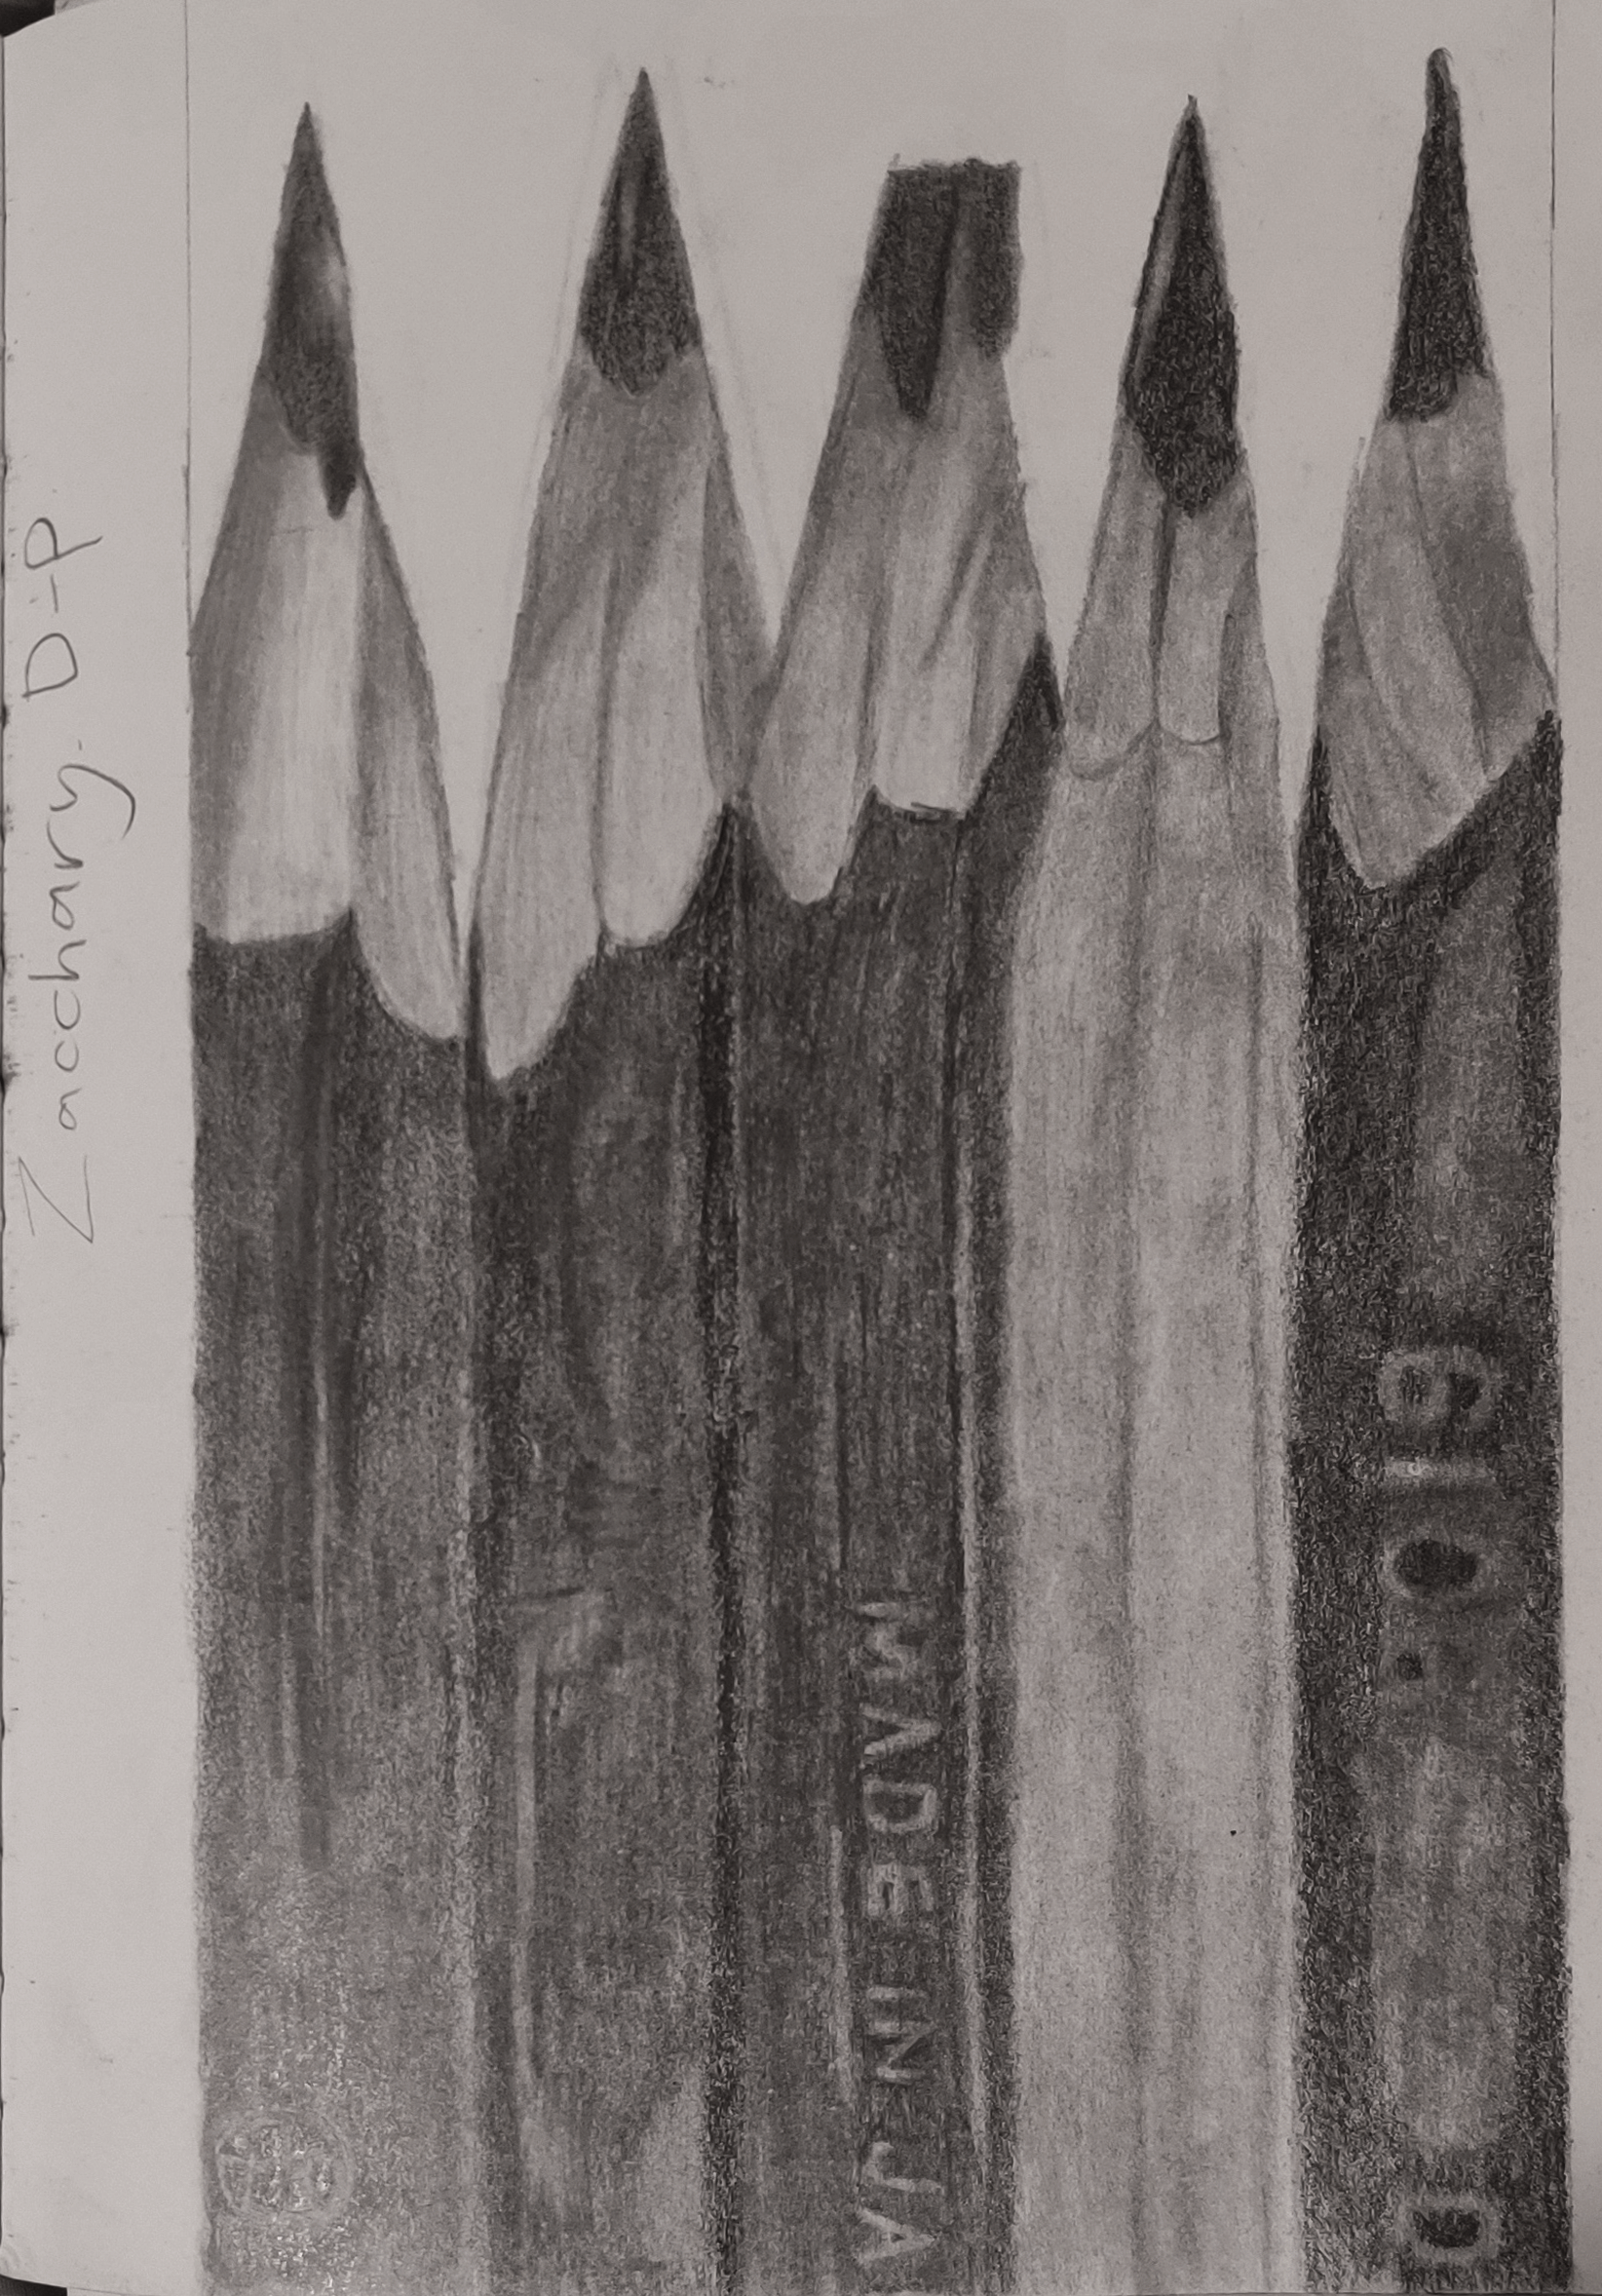 A drawing of 5 pencils side-by-side.